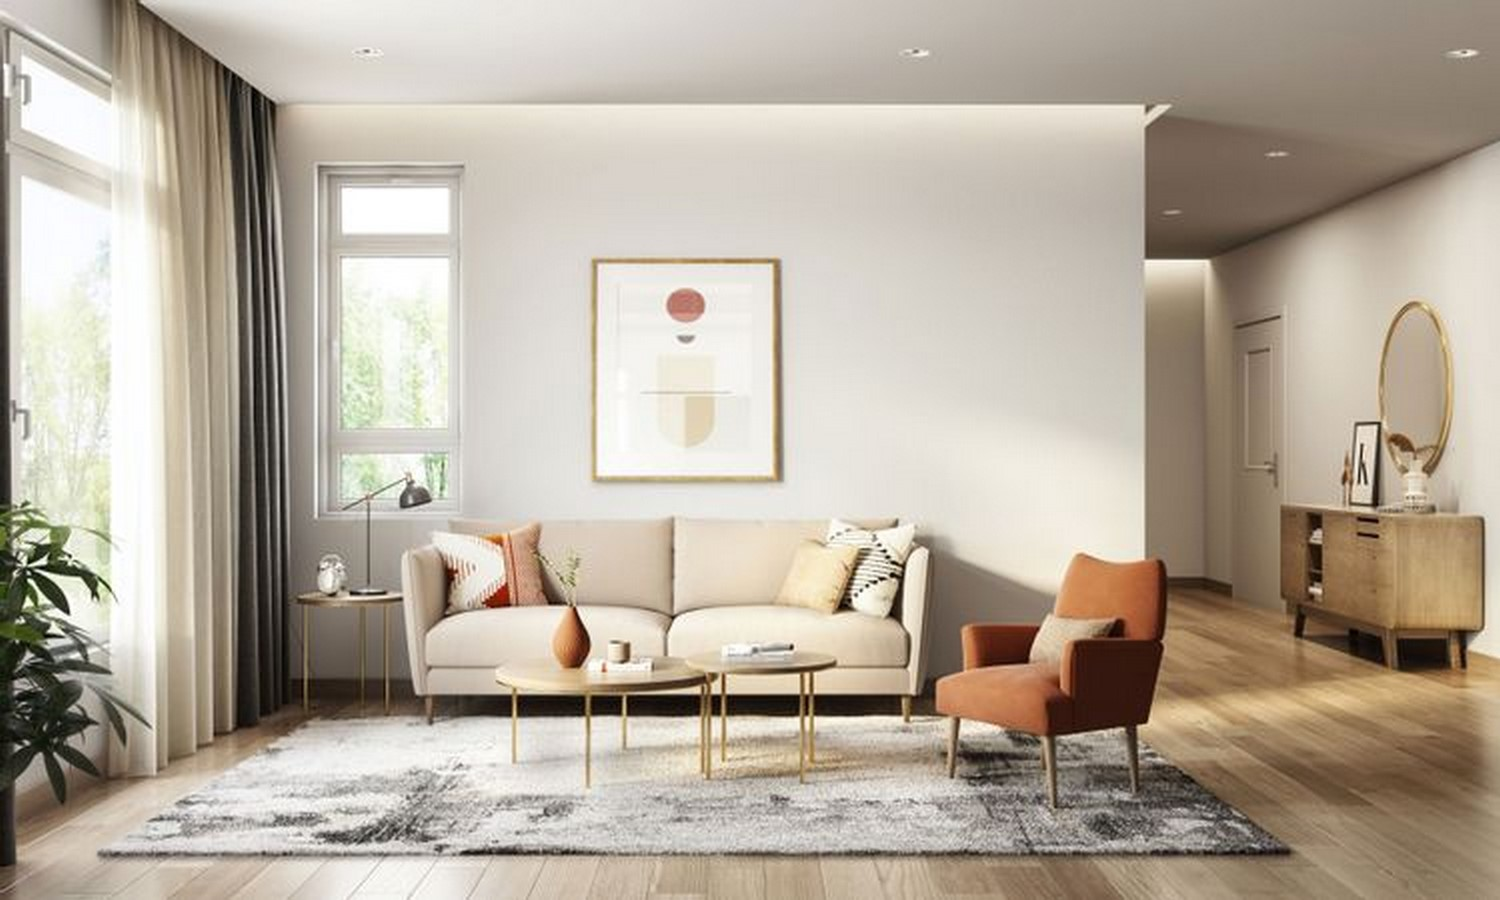 How to incorporate neutral colors into your home? - Sheet2